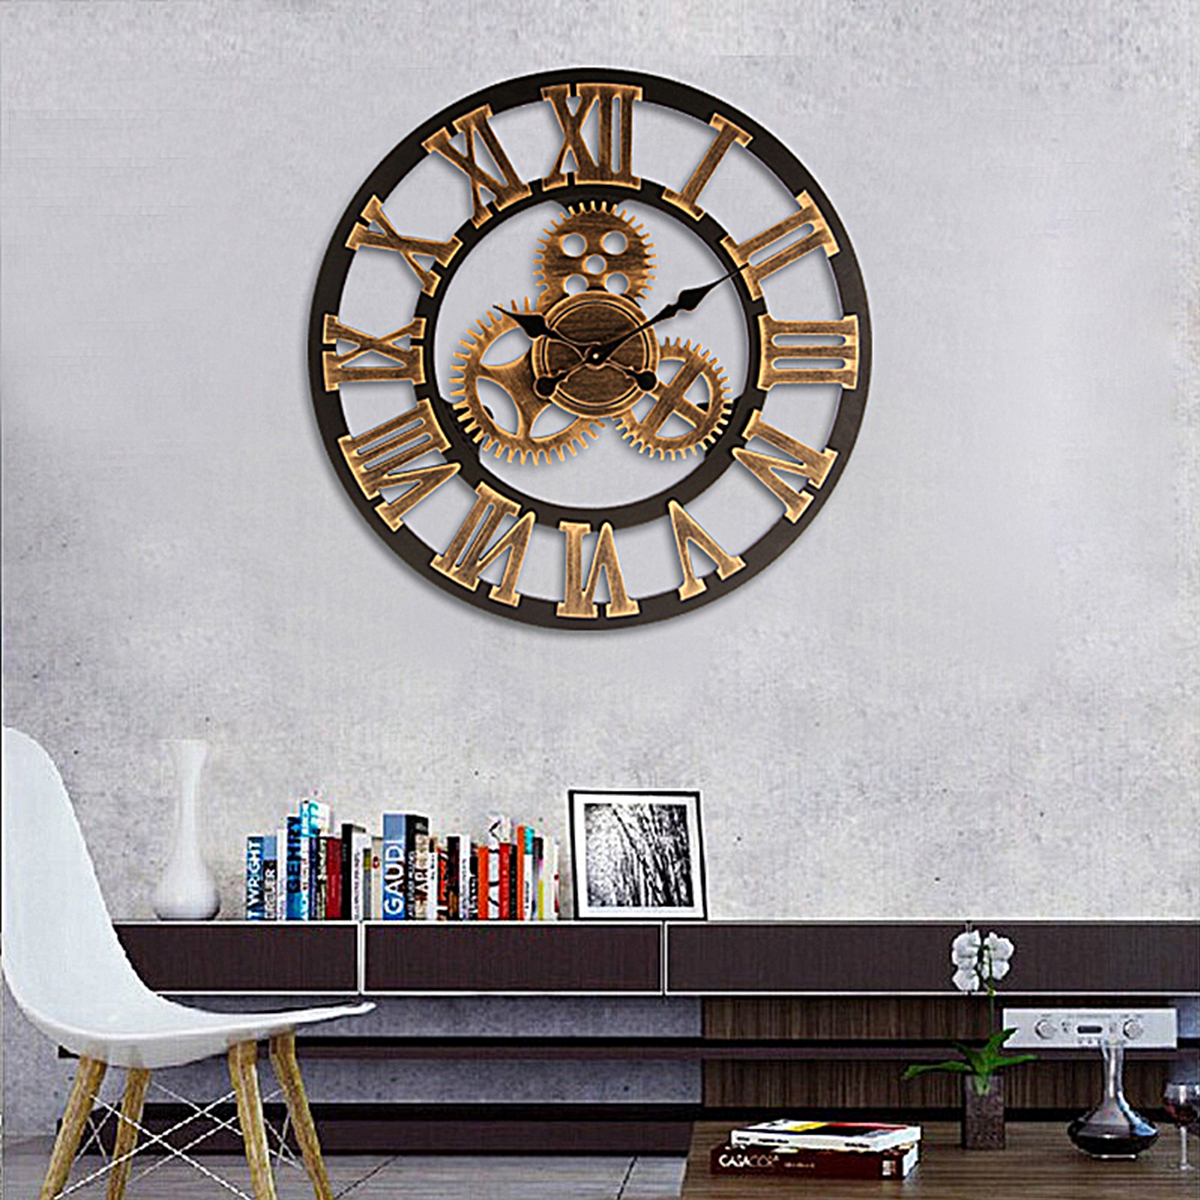 24'' Wooden Vintage Silent Round 3D Gear Wall Clock Home Coffice Shop Decor